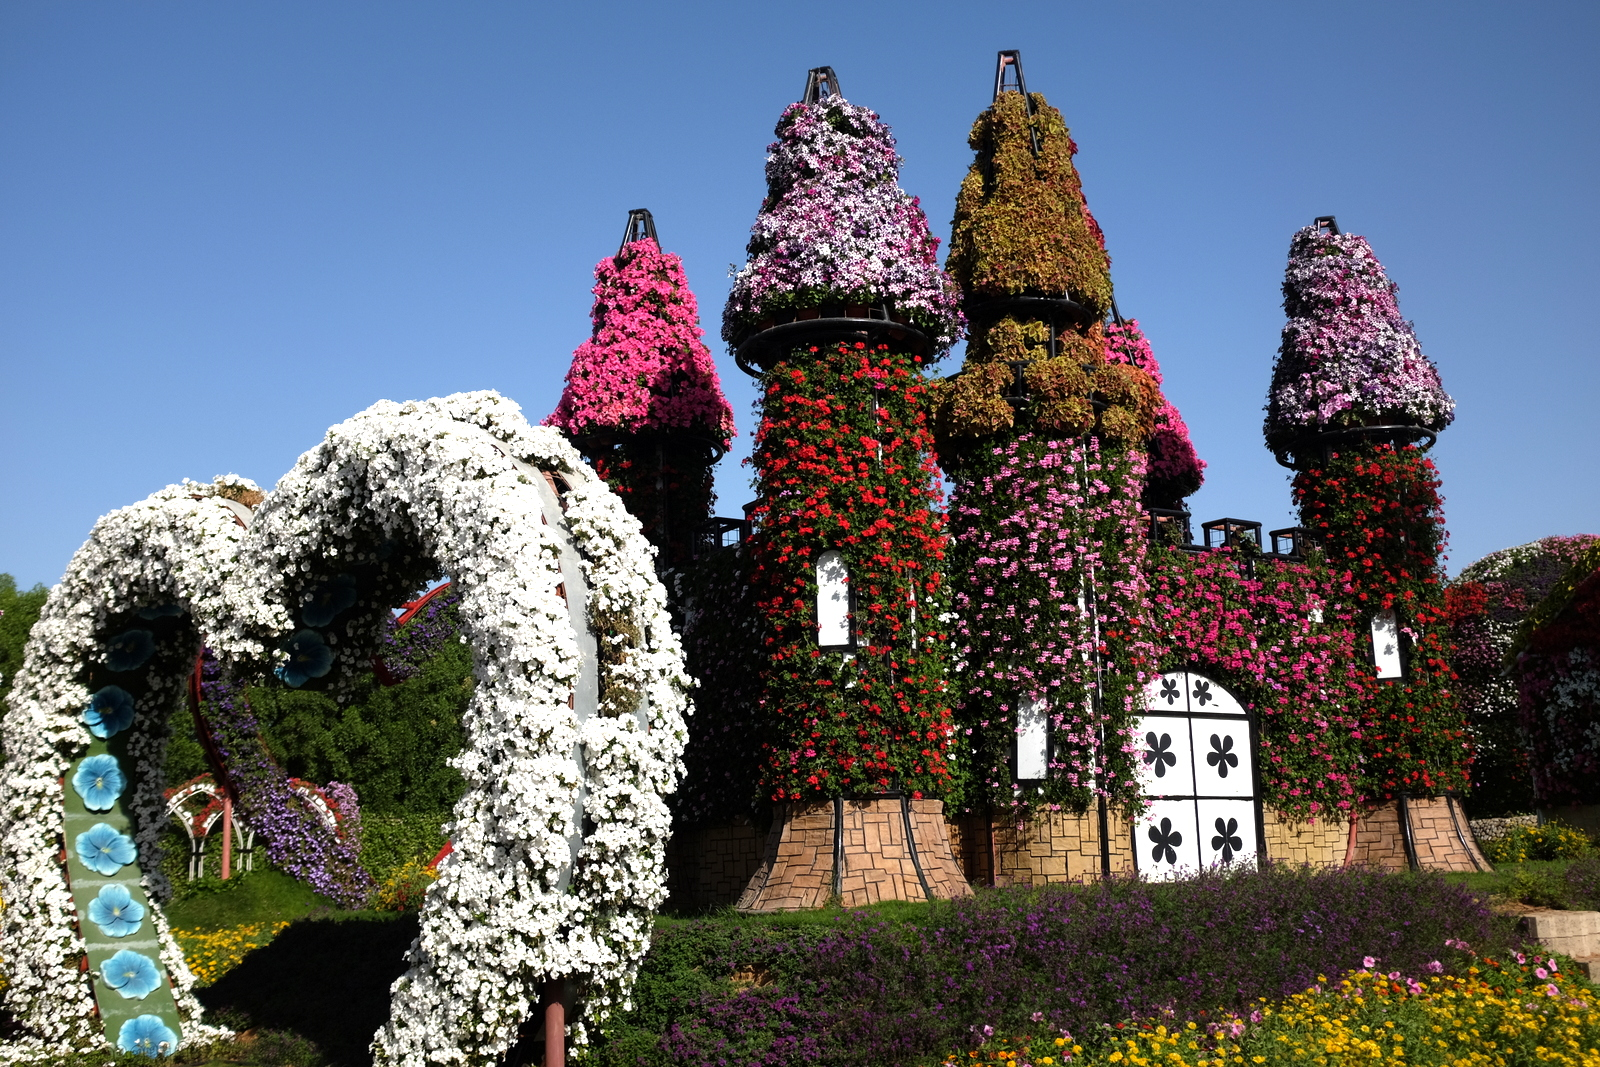 Dubai Miracle Garden - Heart and house